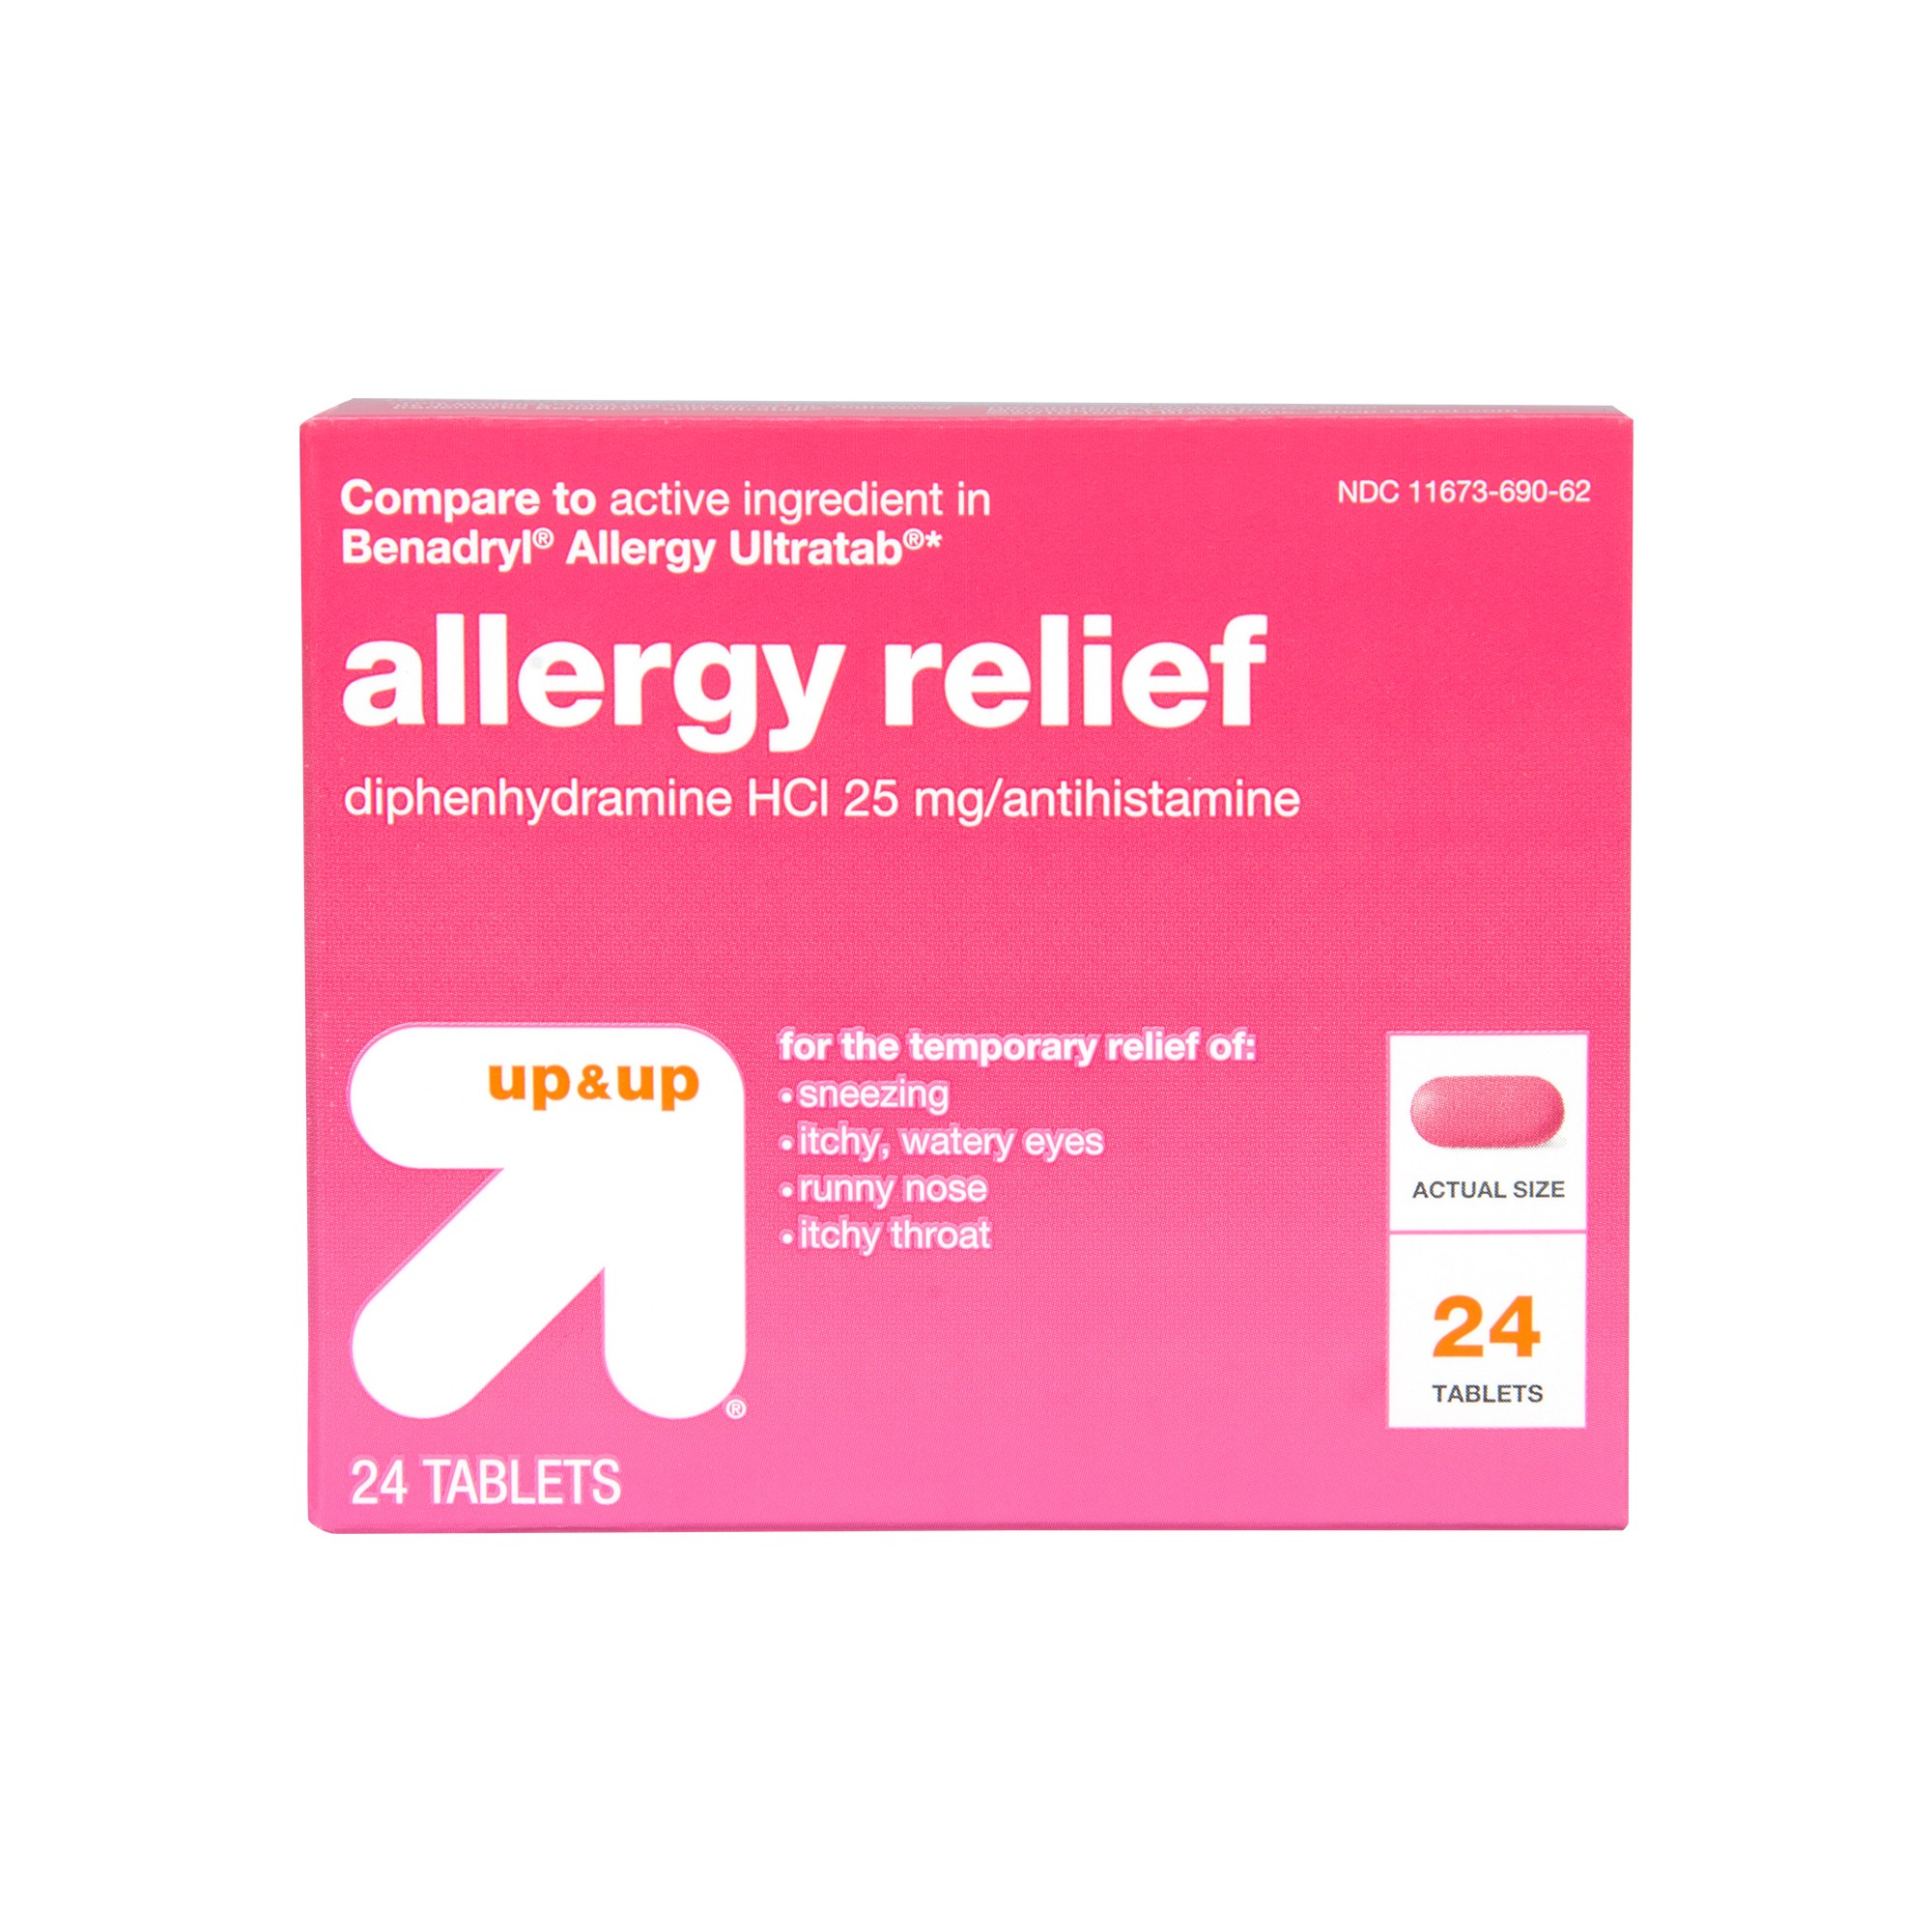 Diphenhydramine HCI Allergy Relief Tablets - (Compare to